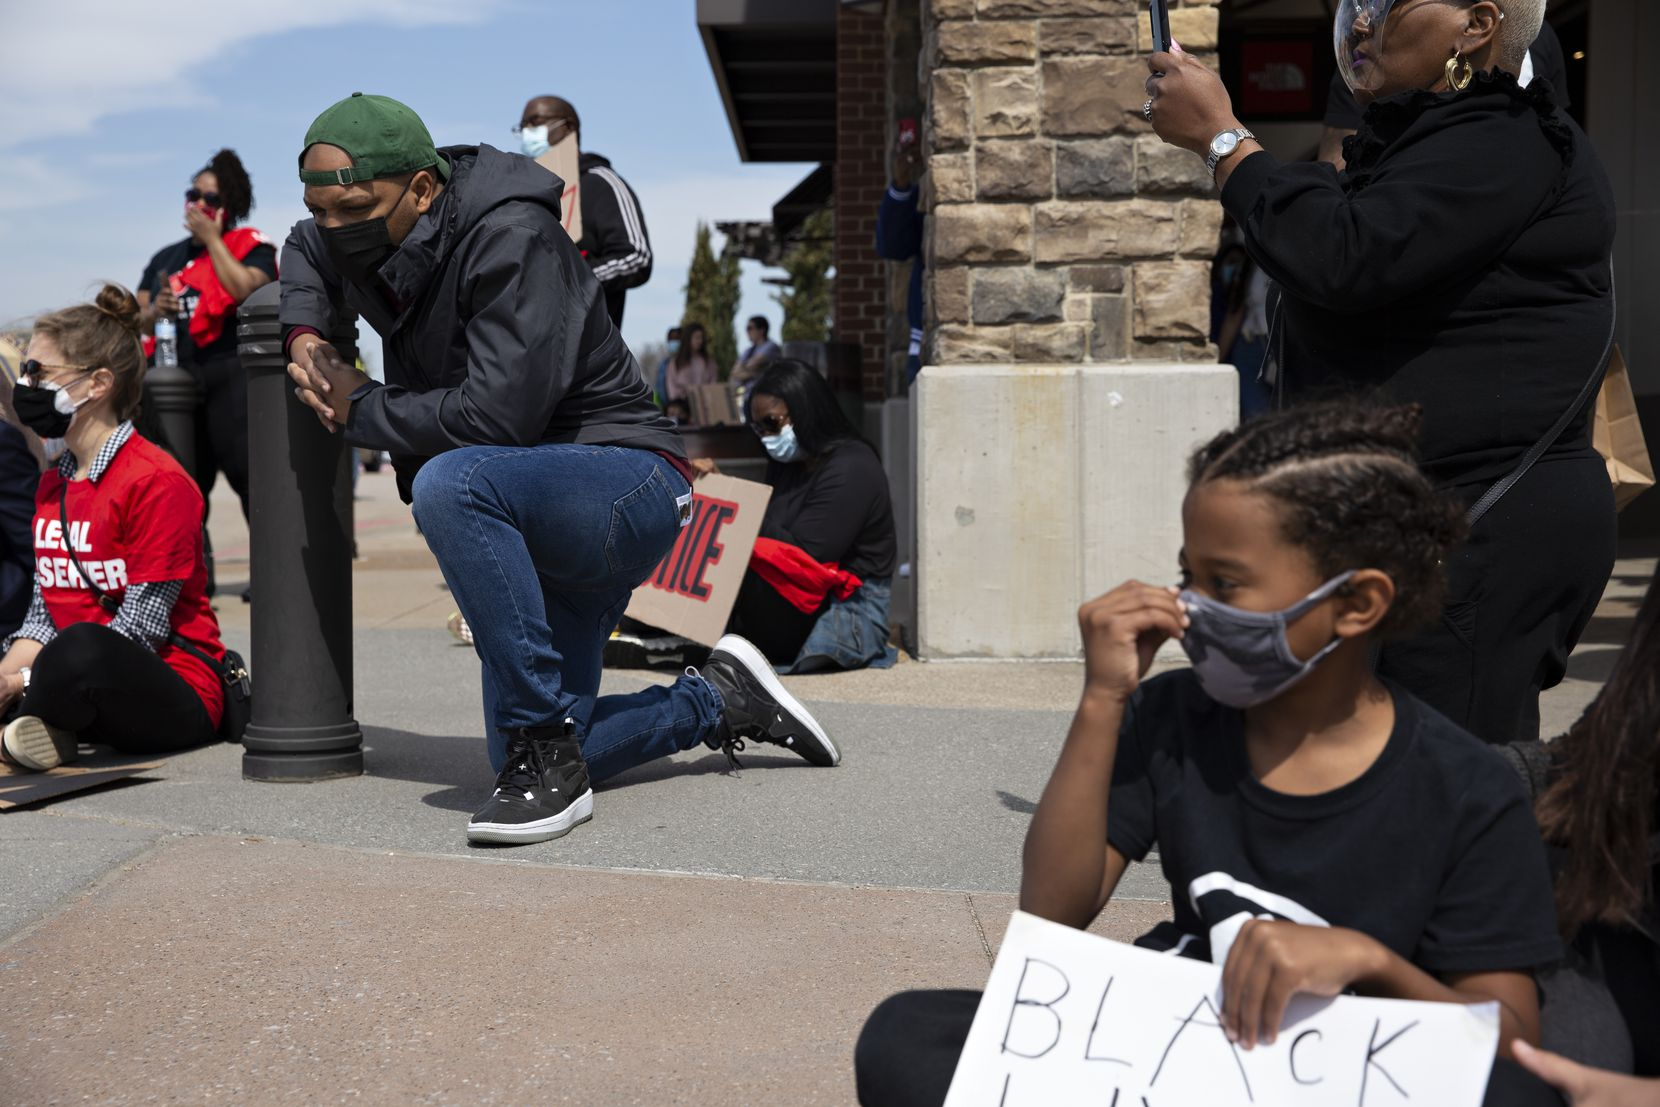 Carl Sherman Jr. takes a knee at the Allen Outlets on Sunday, March 21, 2021 during a march demanding justice for Marvin Scott III, who died a week prior while in custody at the Collin County Jail on March 14, 2021. Some patrons who were originally shopping at the outlets saw the march and joined as it circled the outlets multiple times. Demonstrators called for the arrest of the ÒCollin County SevenÓ, the seven Collin County Jail employees who were placed on leave after MarvinÕs death. (Shelby Tauber/Special Contributor)